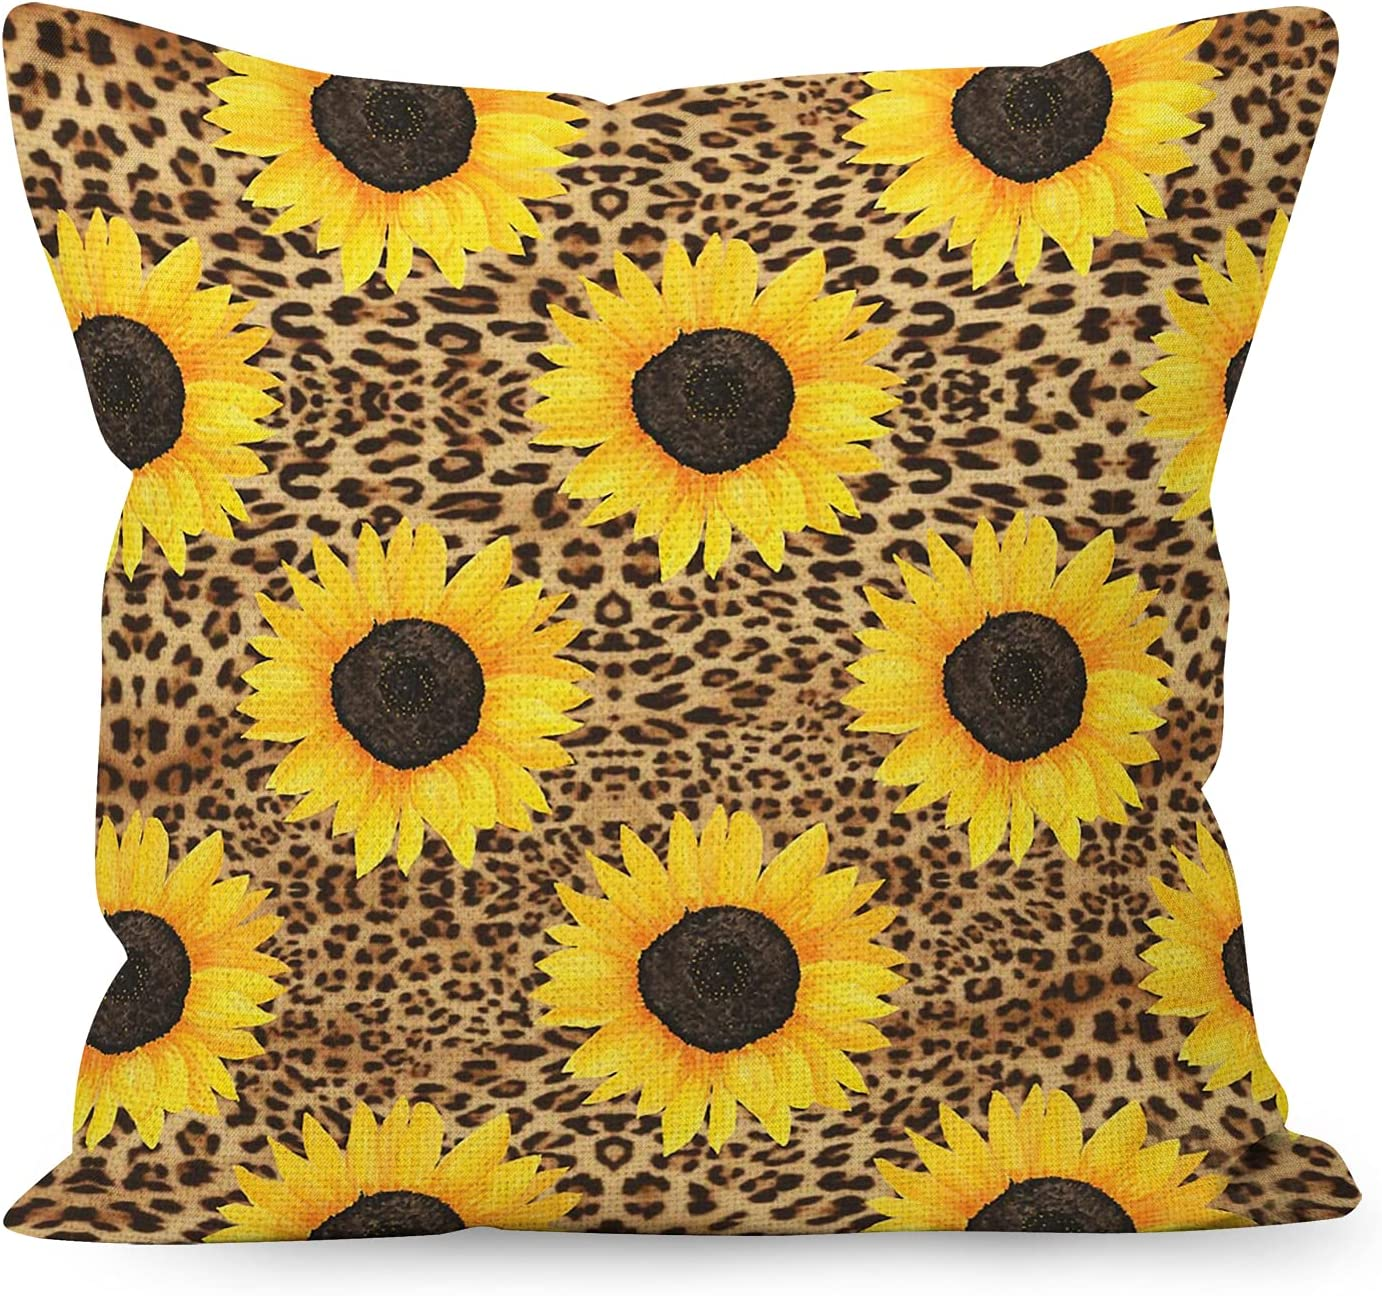 YUESHARE Farmhouse Watercolor Sunflower Leopard Print Linen Throw Pillow Cover,Sunflower Leopard Print Lover Gifts for Home Room Bed Sofa Decorations Decor (18 x 18 Inch)